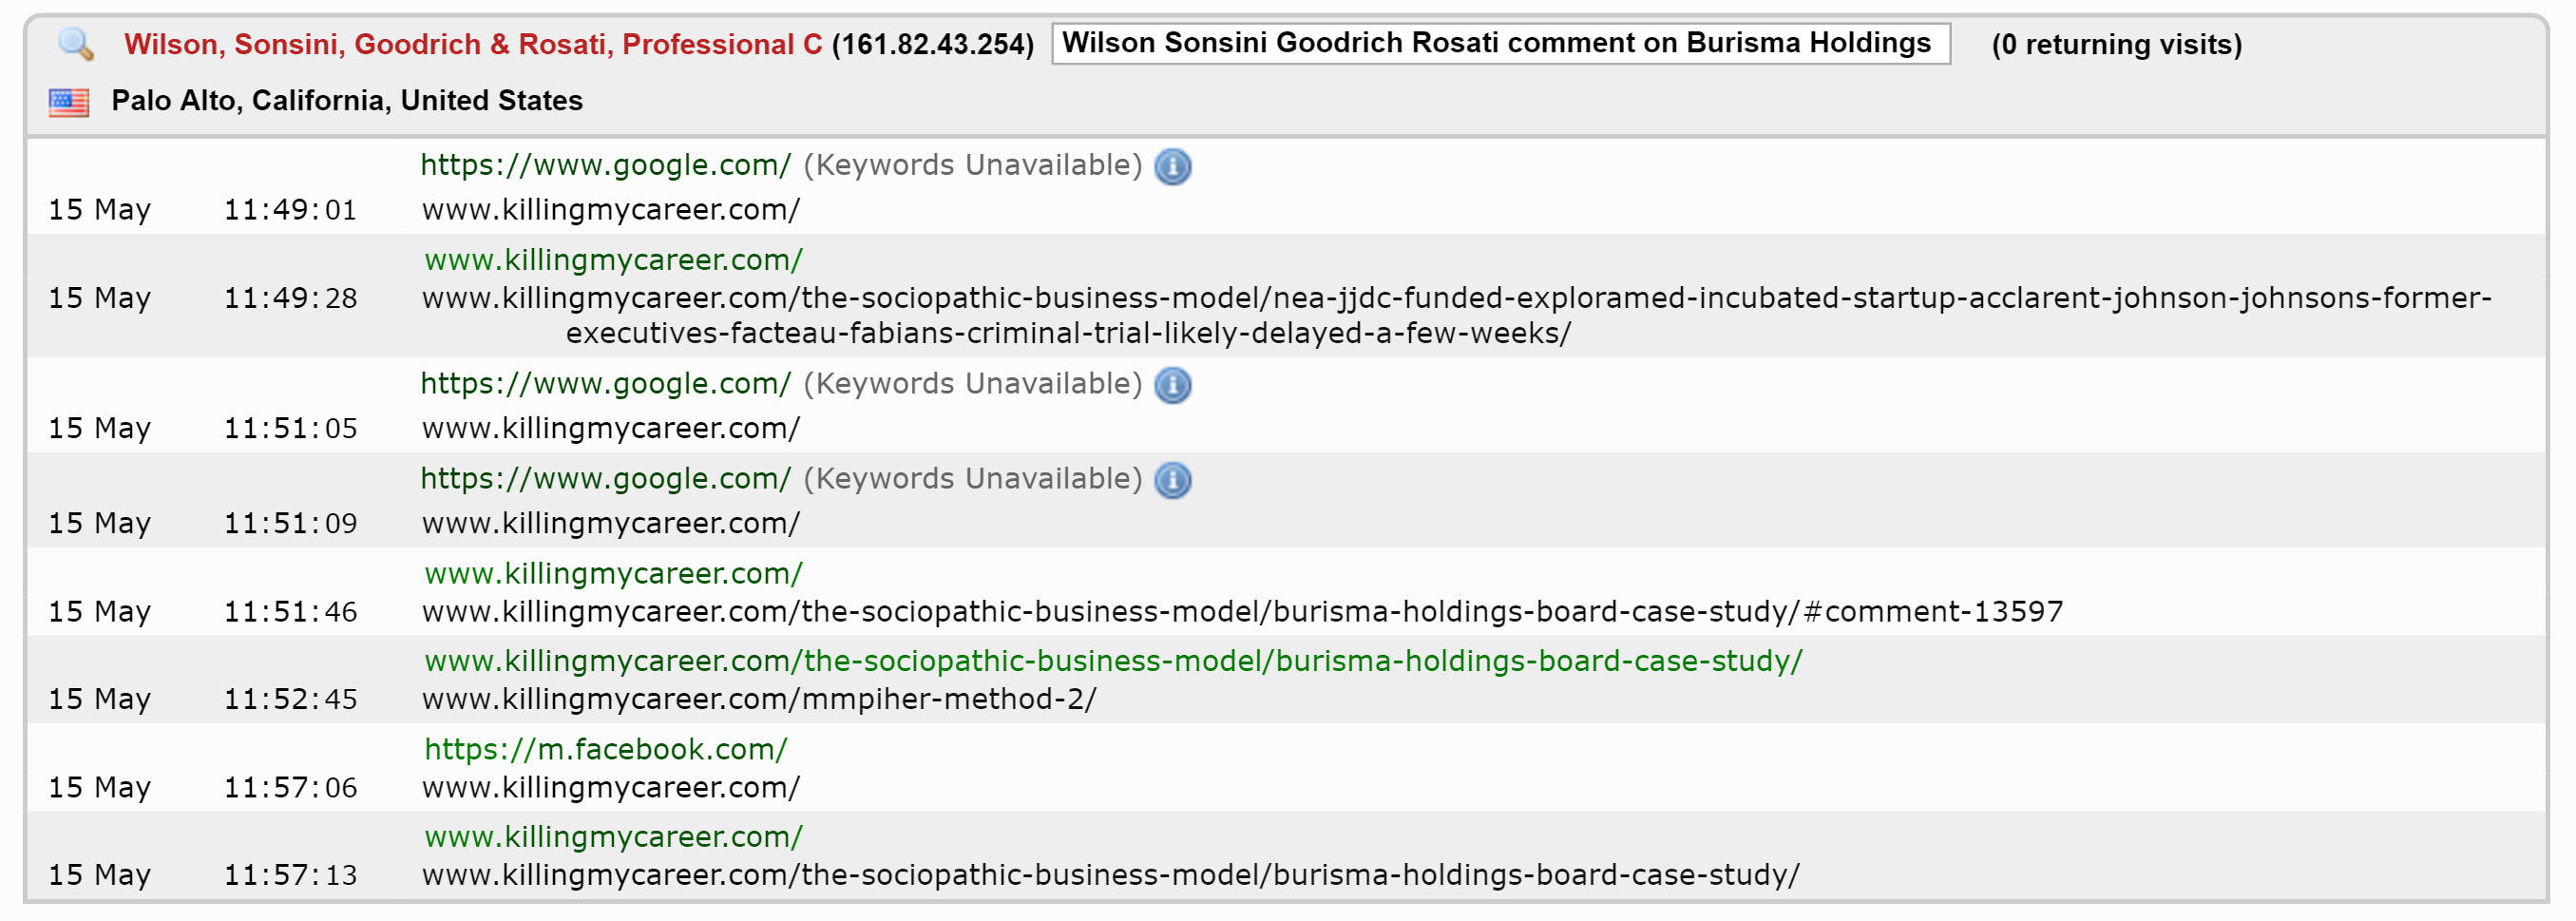 5 15 2016 Wilson Sonsini Goodrich and Rosati #TheSociopathicBusinessModel